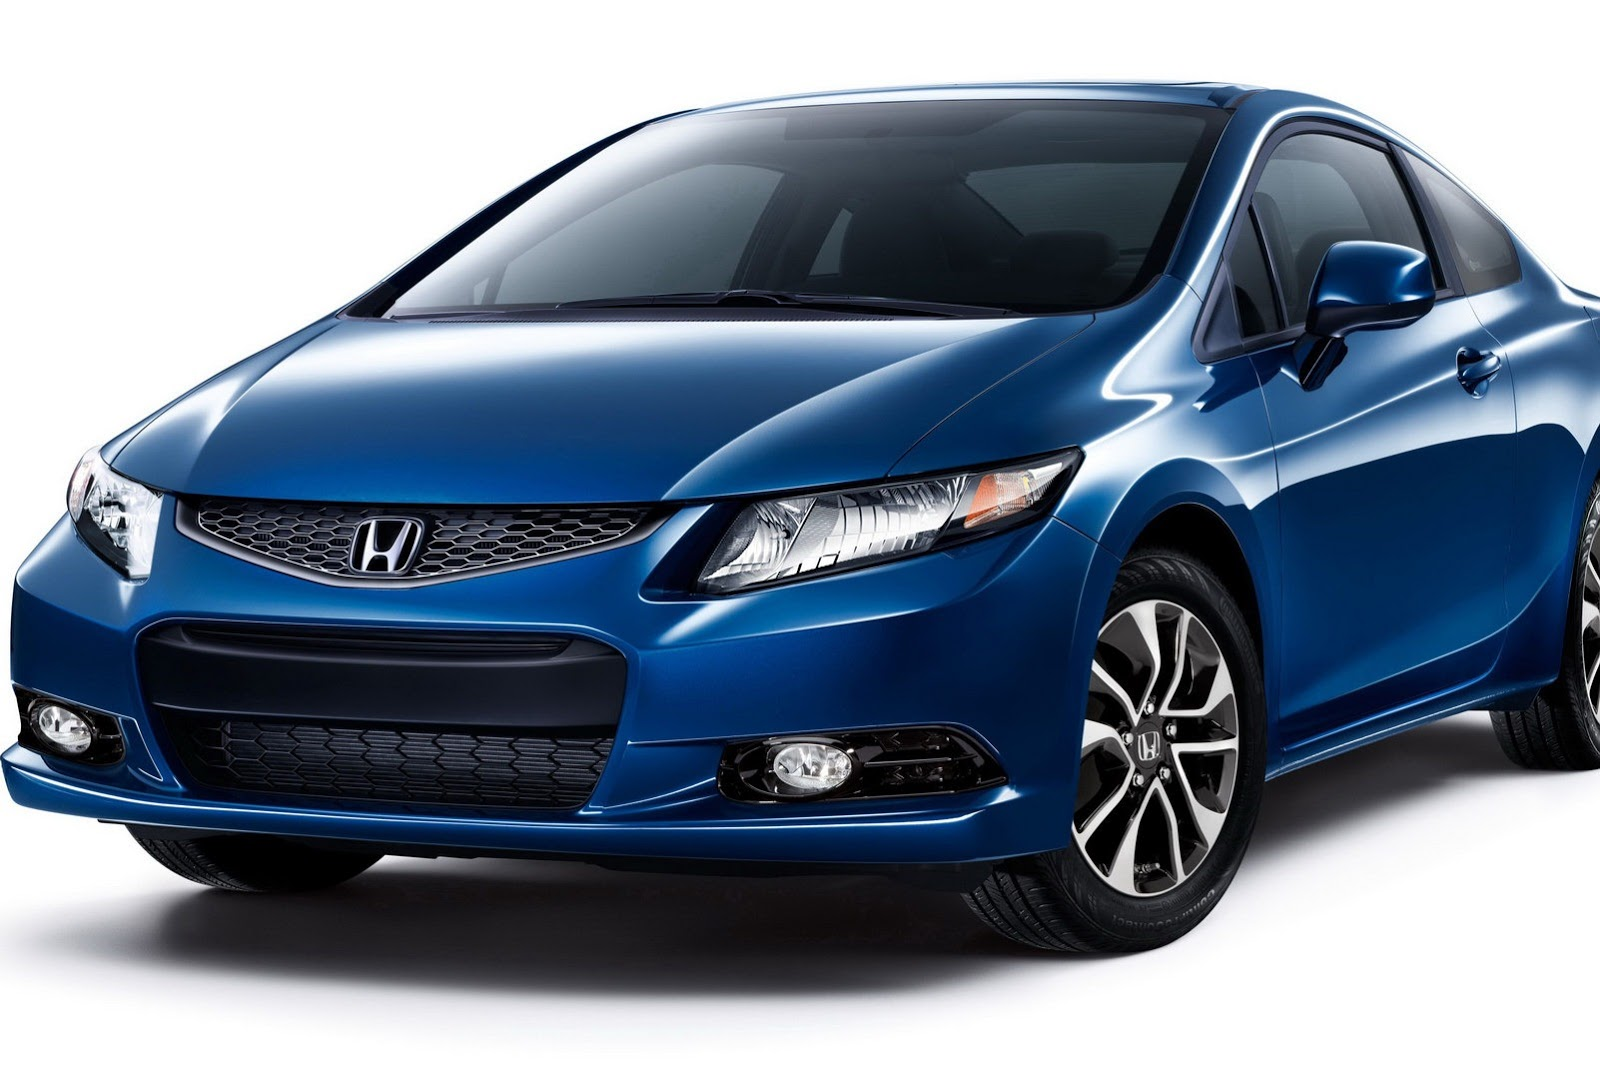 Honda Refreshes Civic For 2013 With New Grille And Added